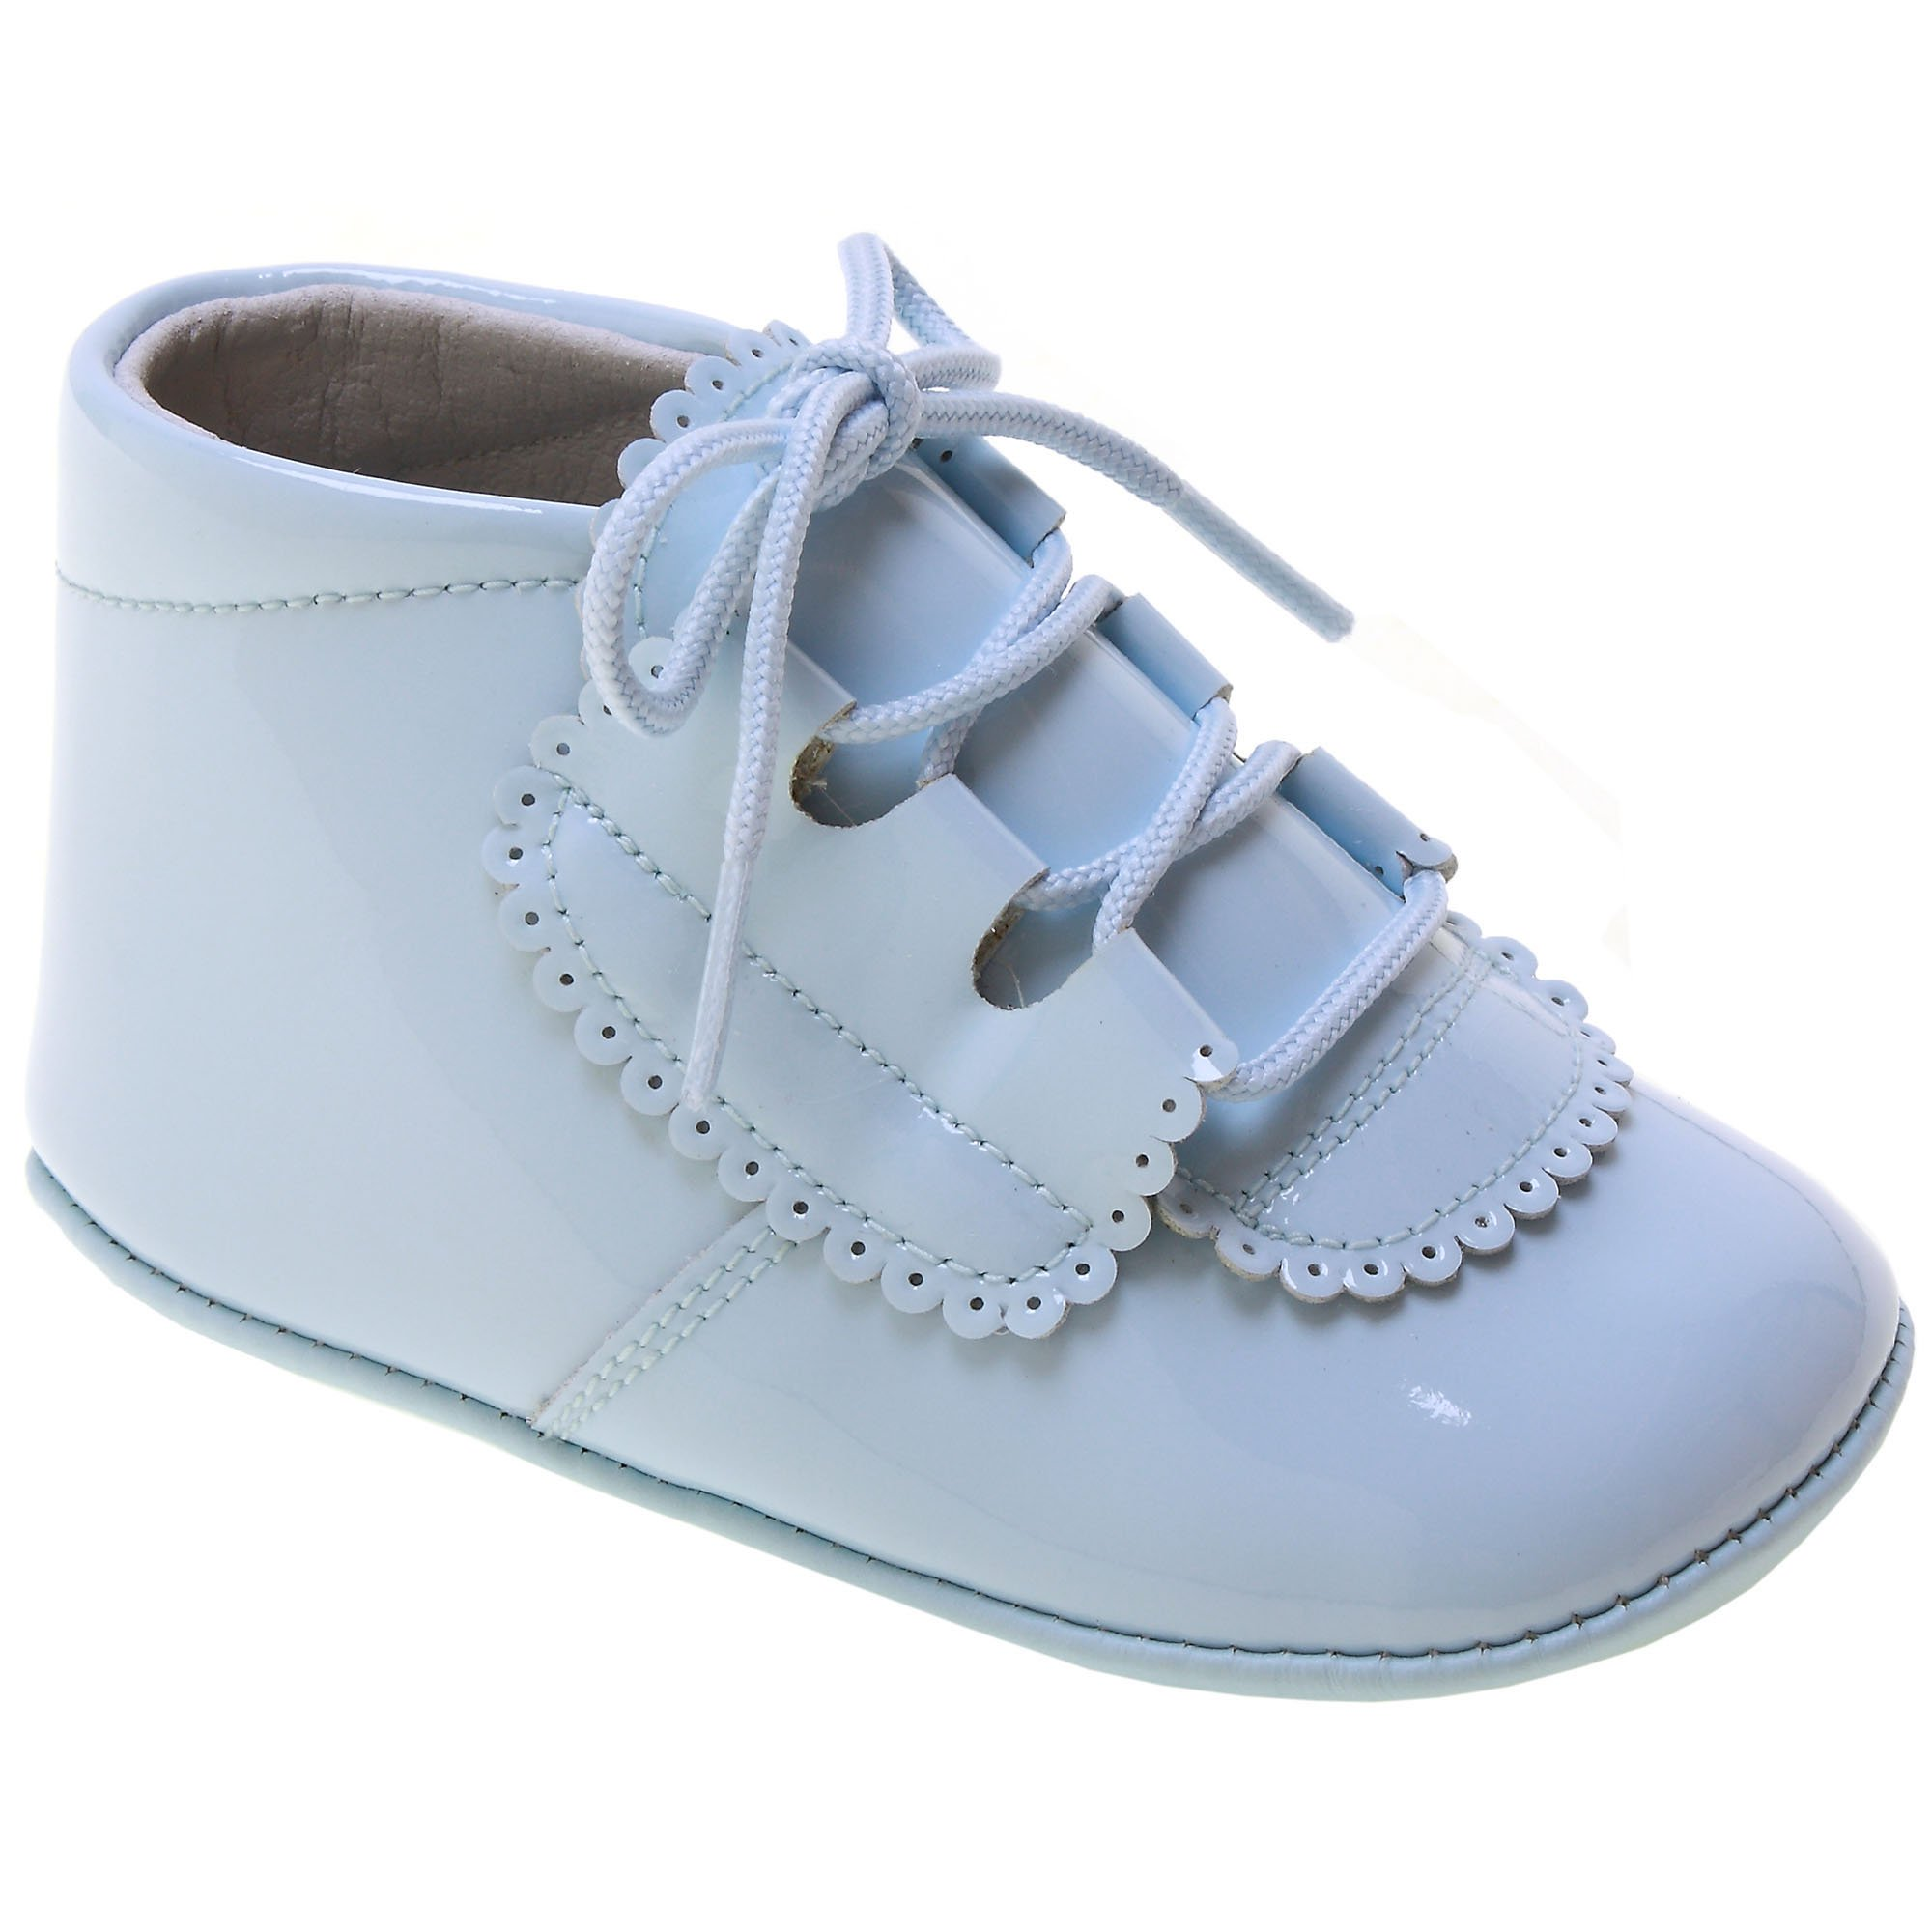 Spanish Leather Shoes Toddler